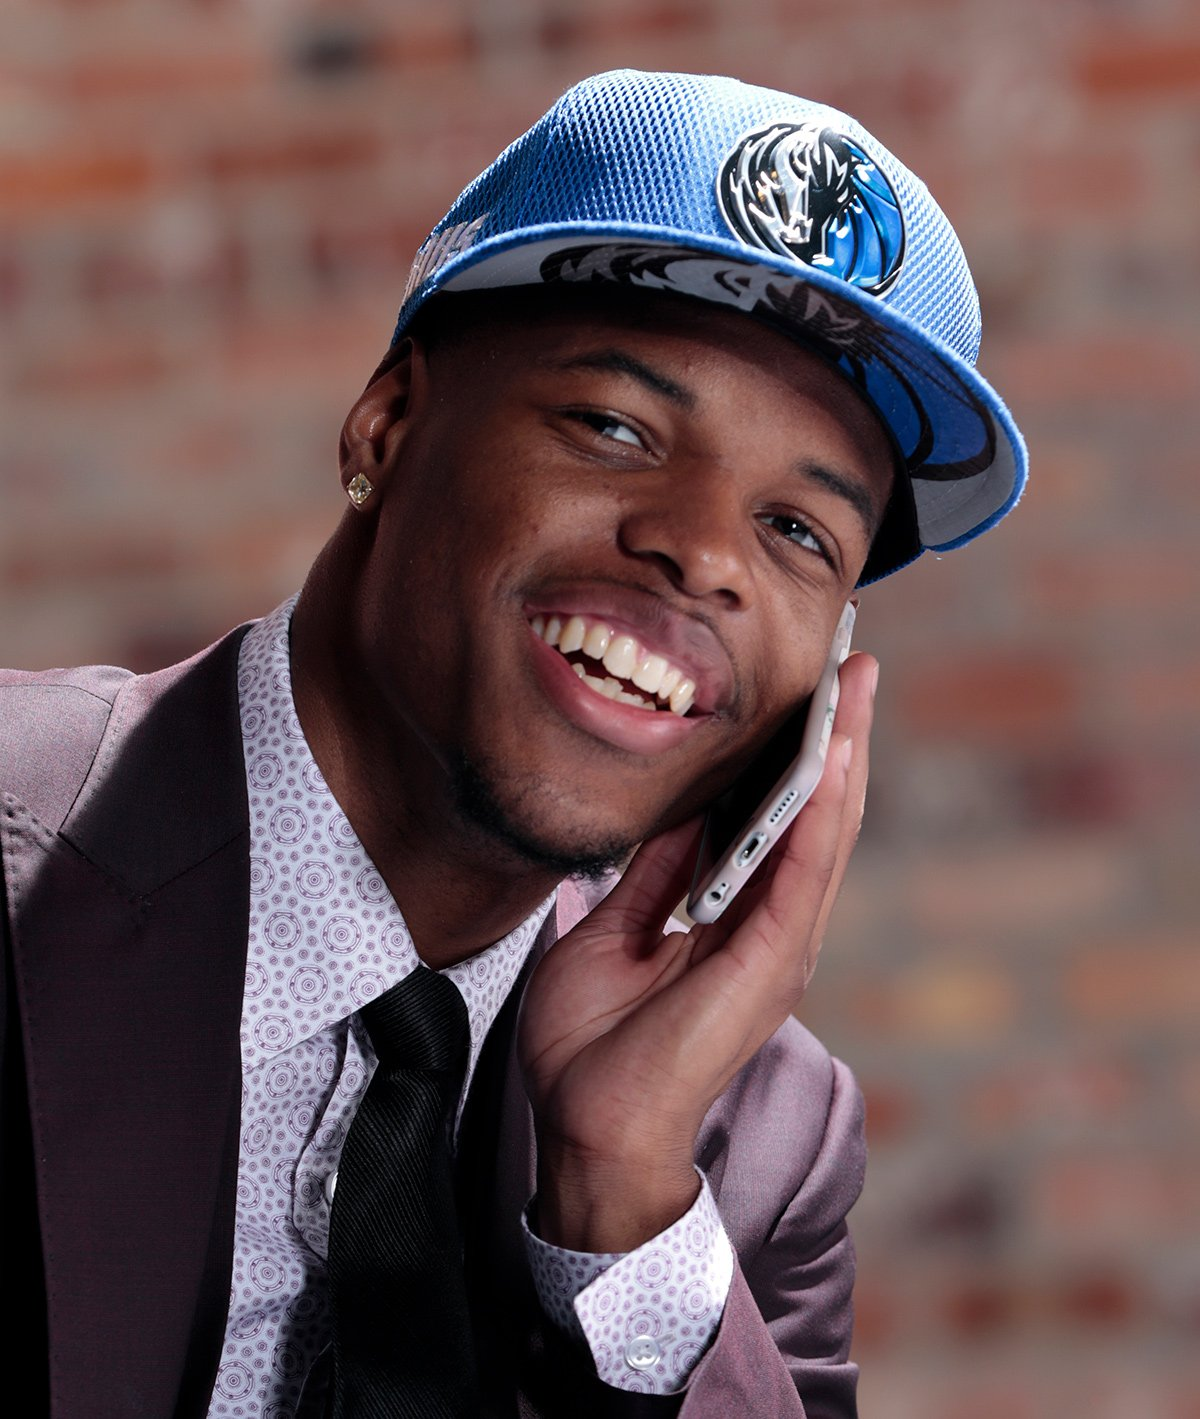 .@Dennis1SmithJr has joined @sdotcurry at Under Armour, according to an ESPN report.  ��: https://t.co/Wph0azwTbo https://t.co/wxjvrvz5Z9